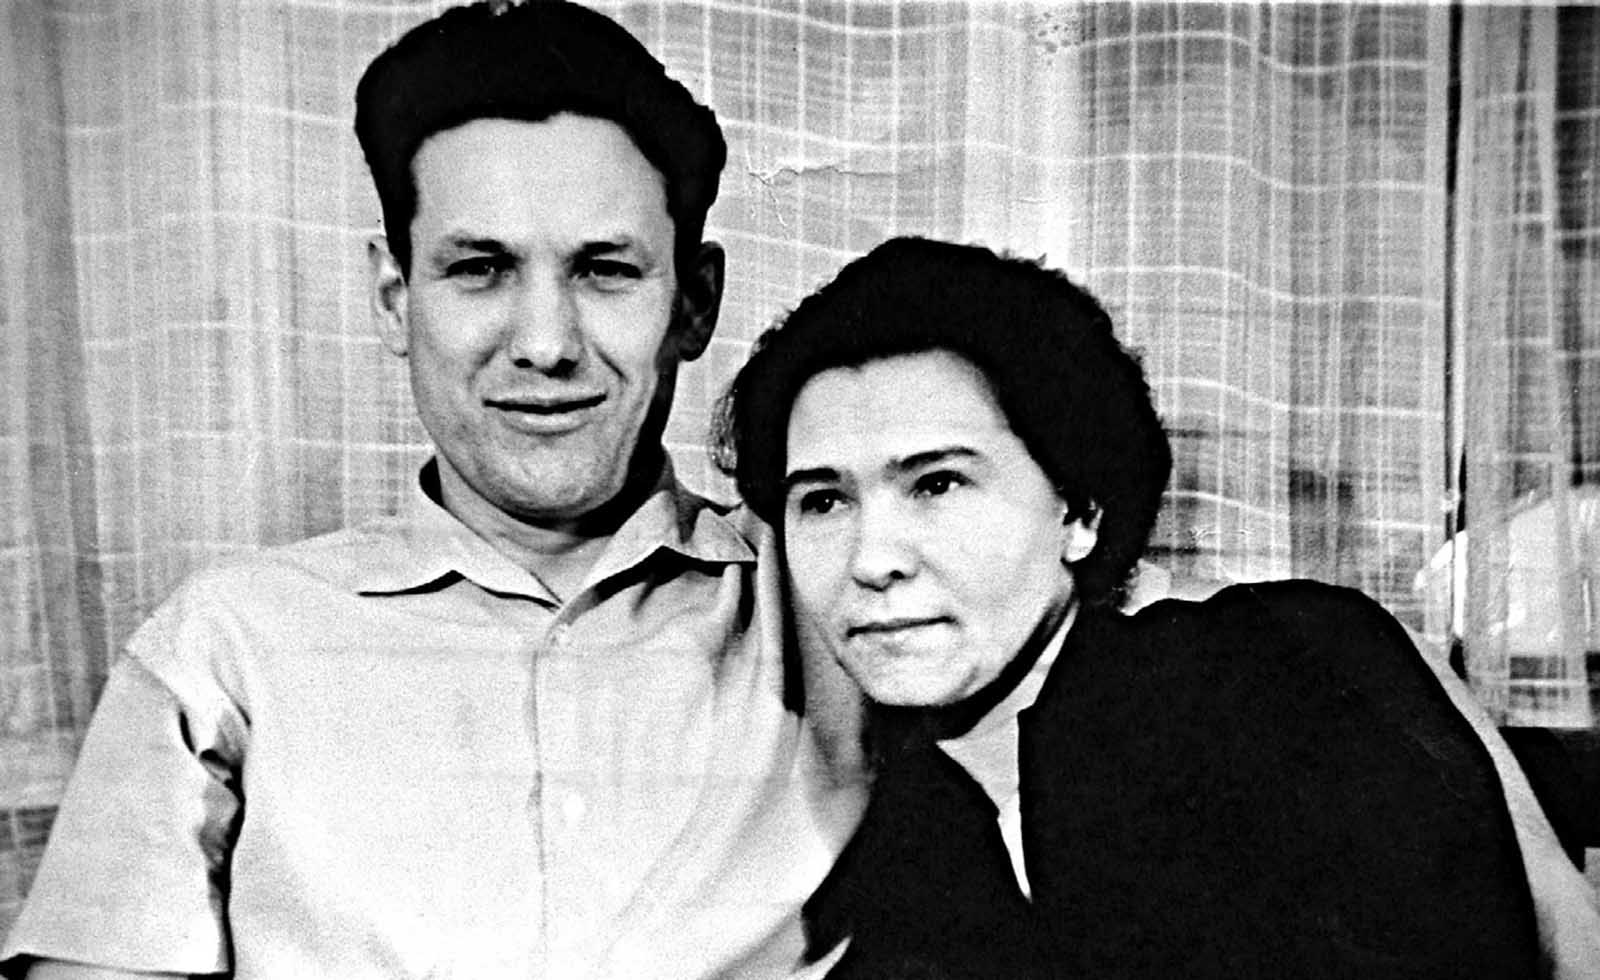 Boris Yeltsin and his wife Naina Yeltsina in 1960s.